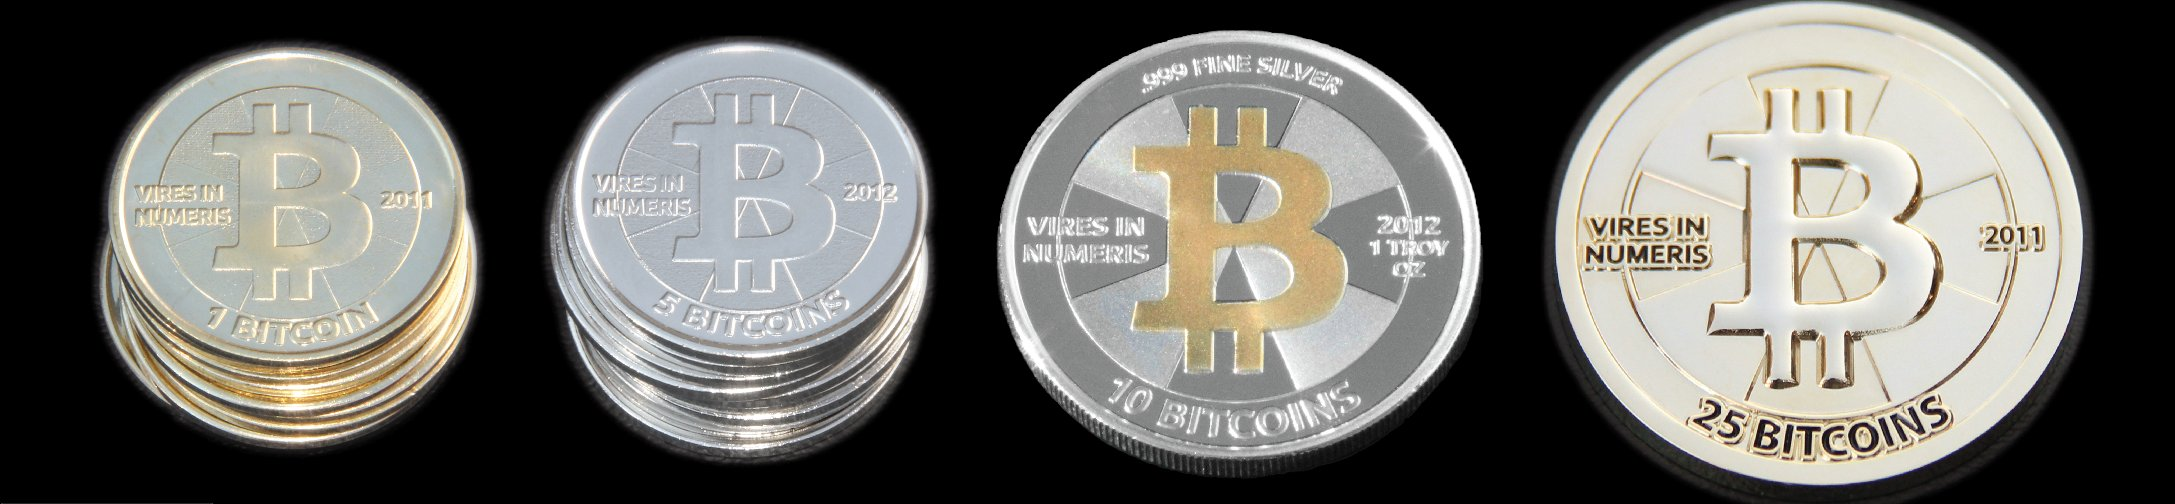 Physical bitcoins australia northern cape gambling and betting board